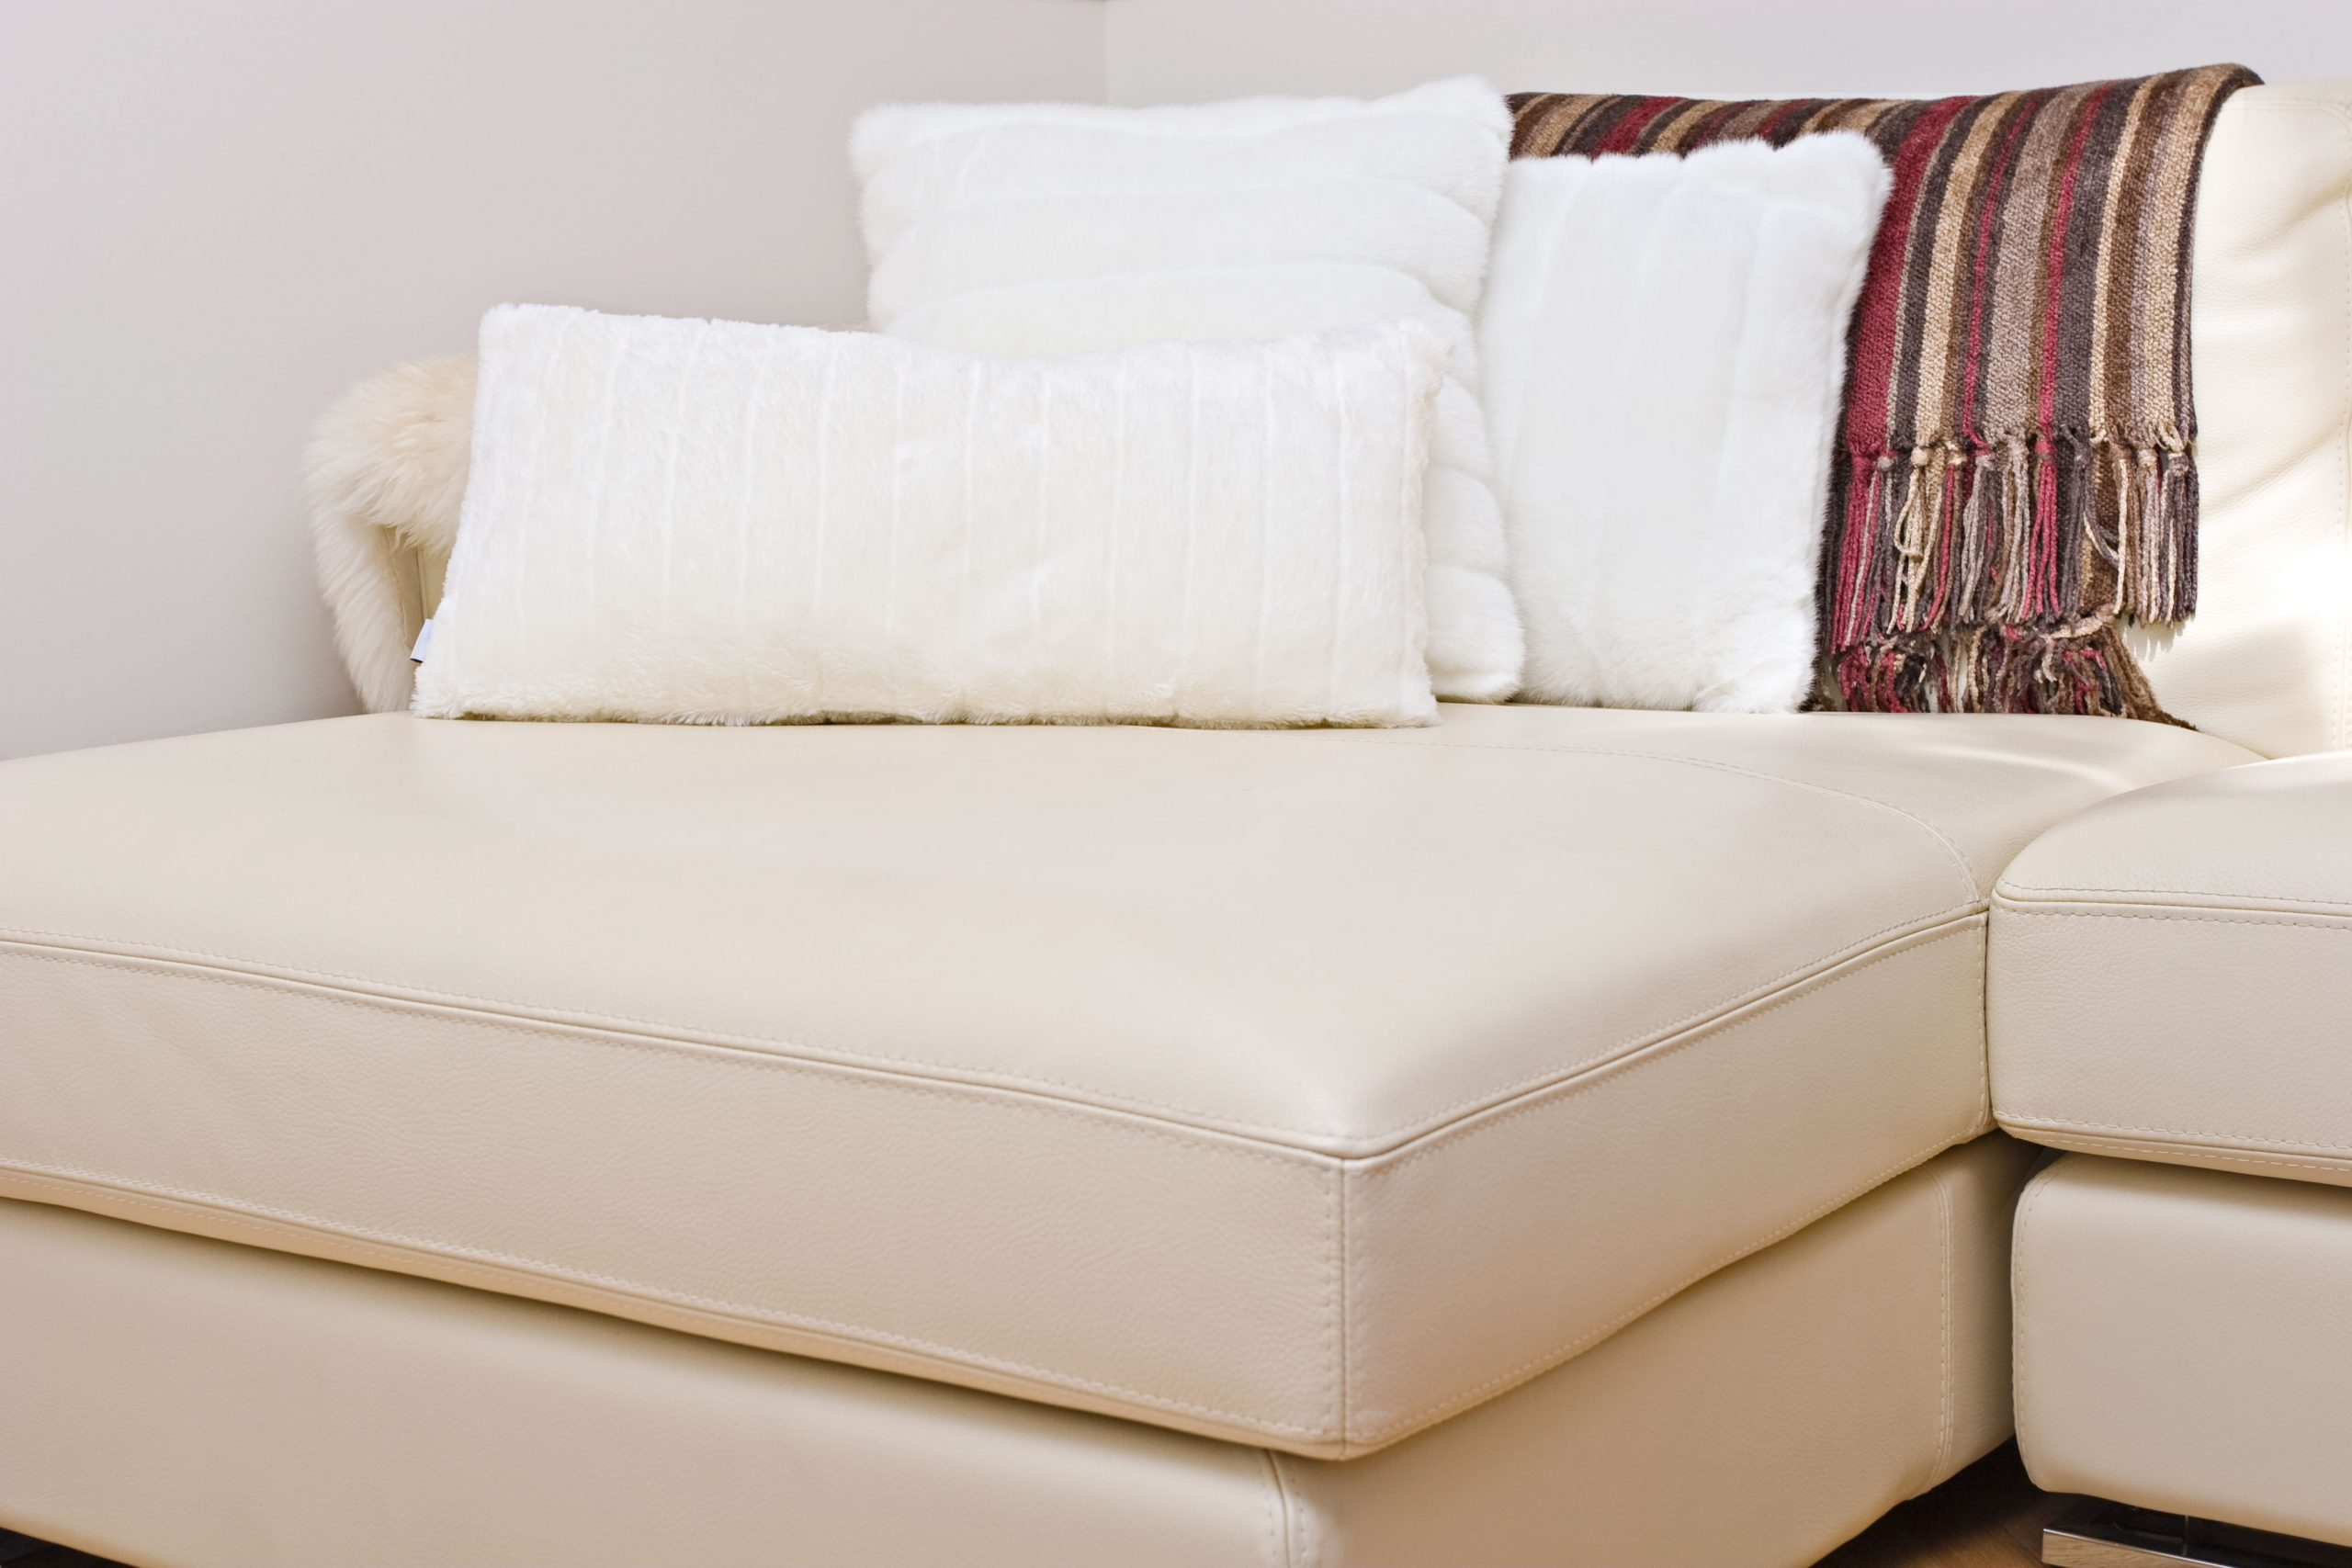 upholstery cleaning - couch with pillows